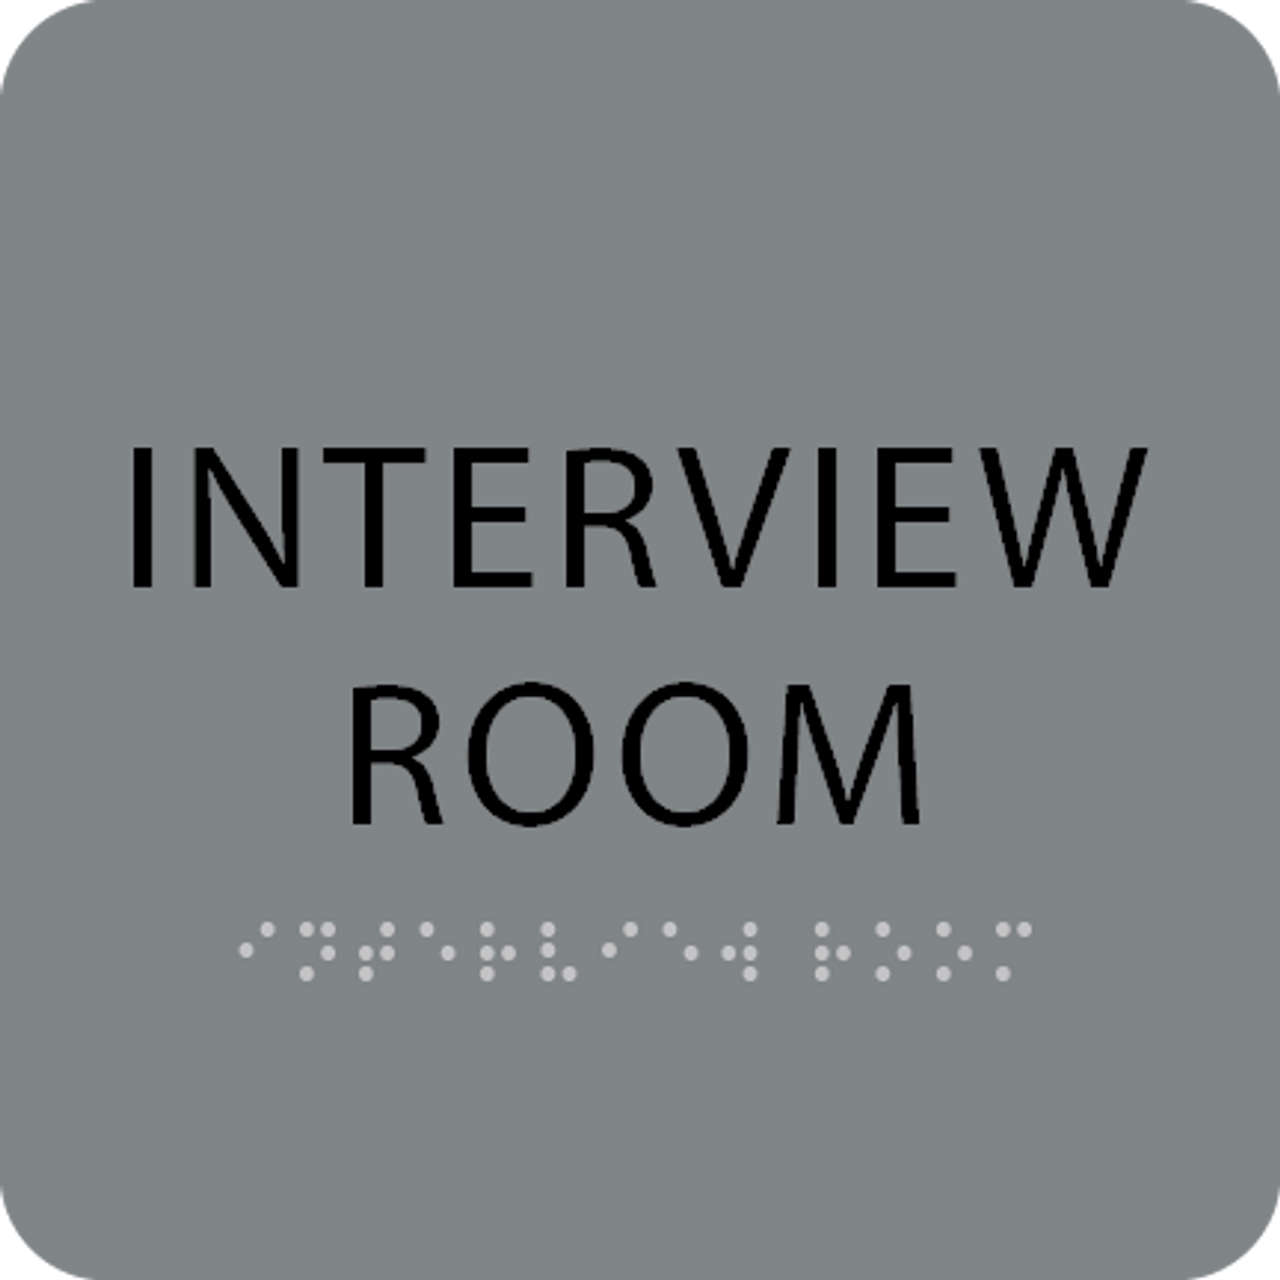 Grey Interview Room Tactile Sign